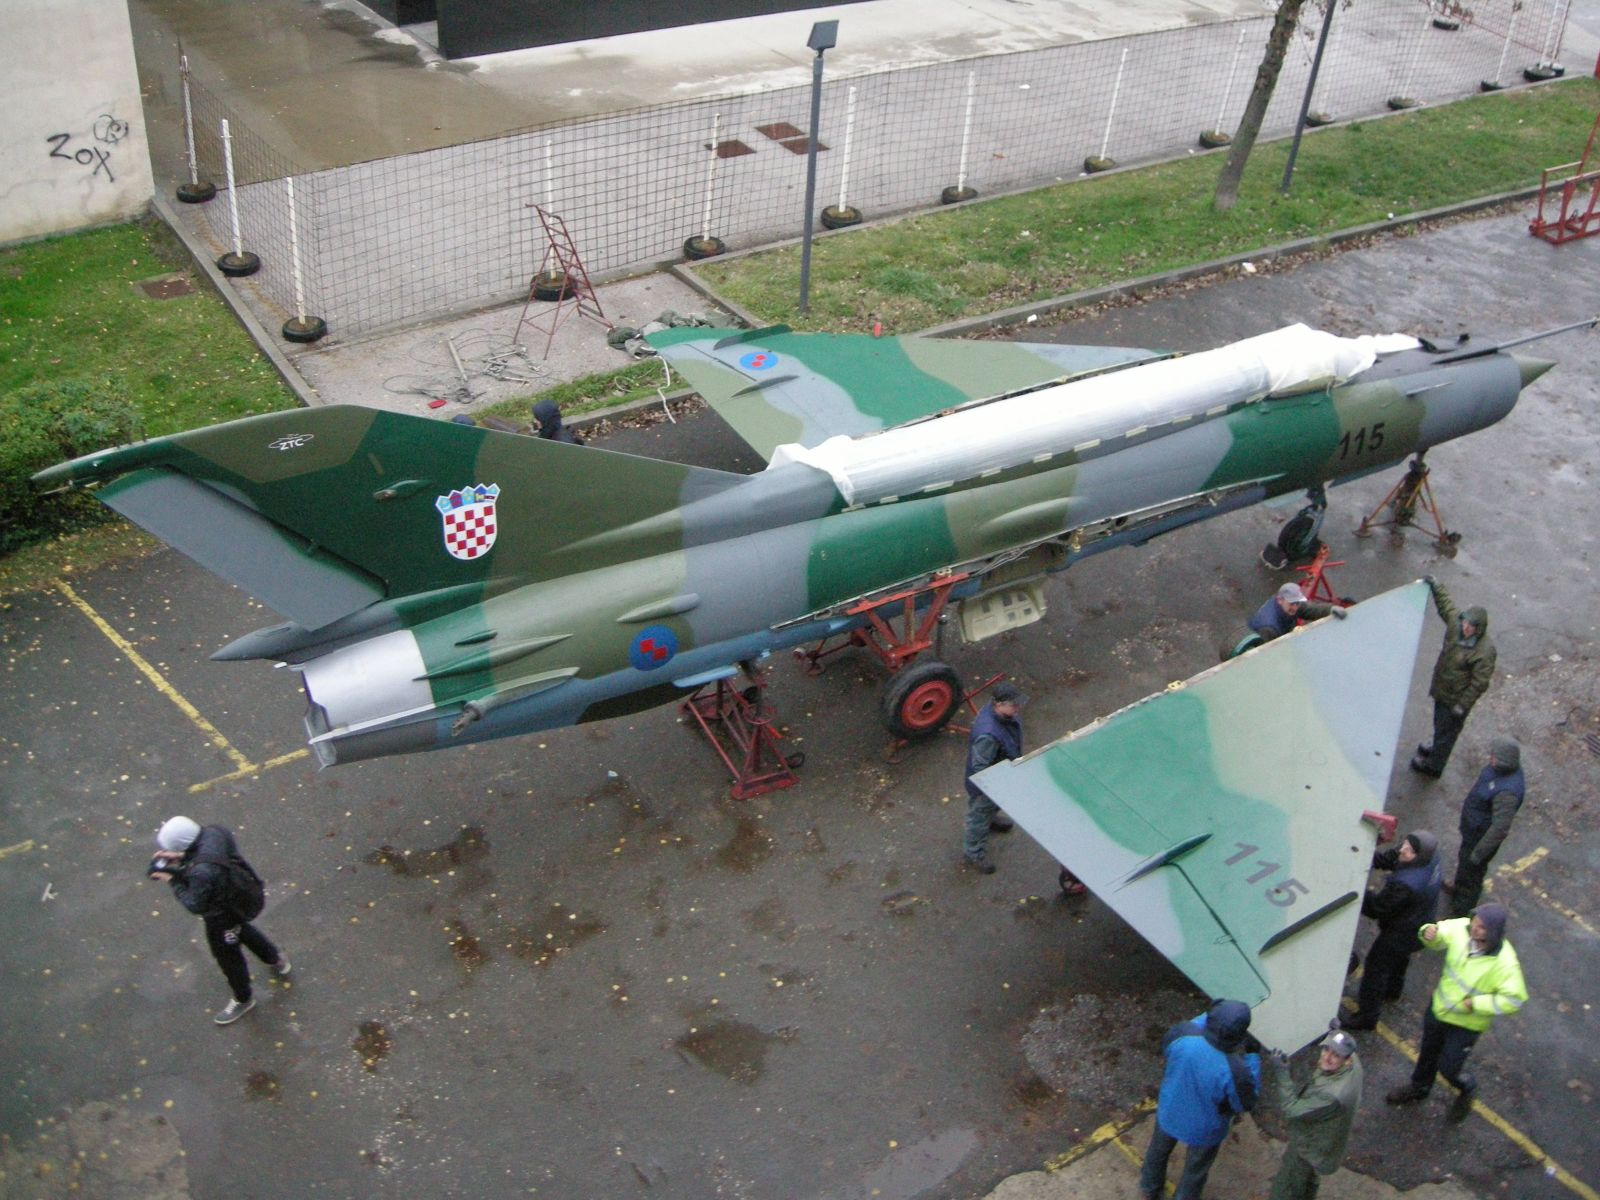 MiG-21bisD for the anniversary of the Faculty of Aerospace Engineering in Zagreb